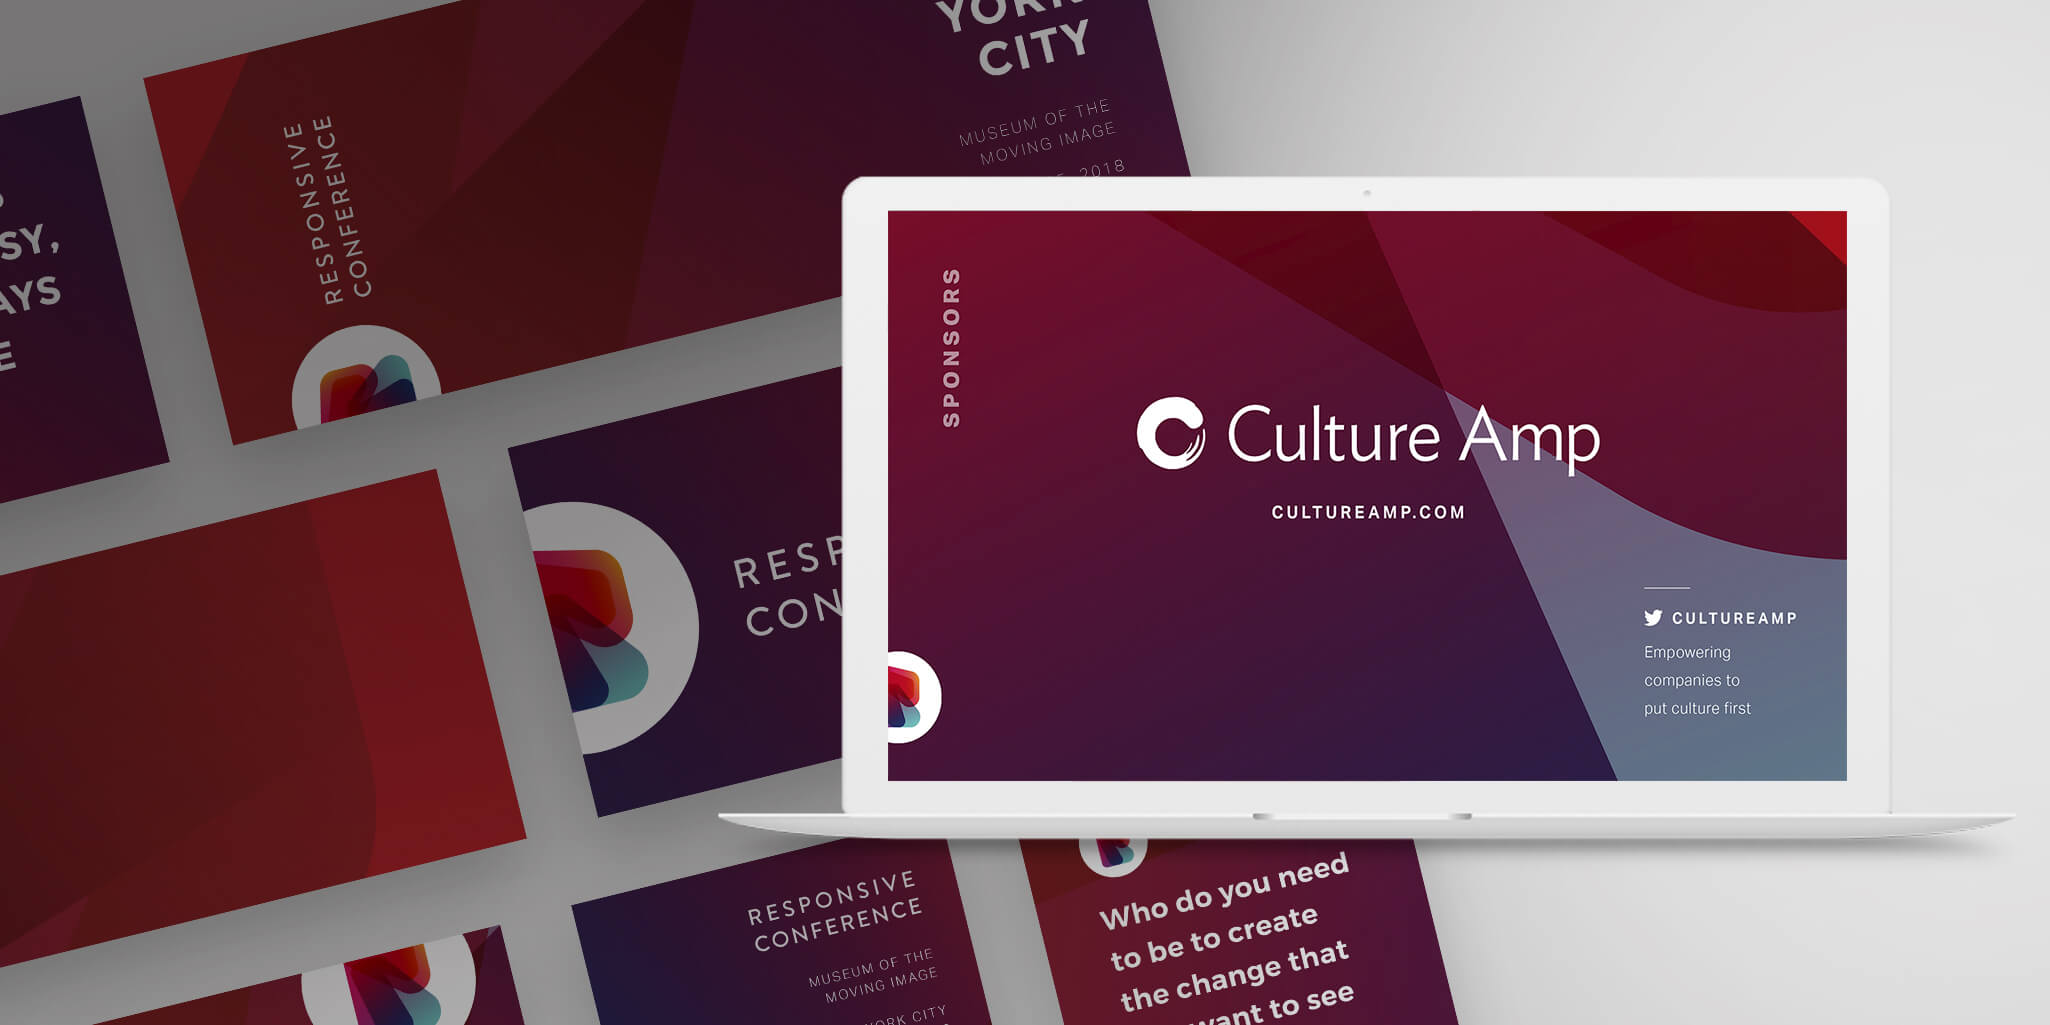 responsive conference social graphics and screen designs